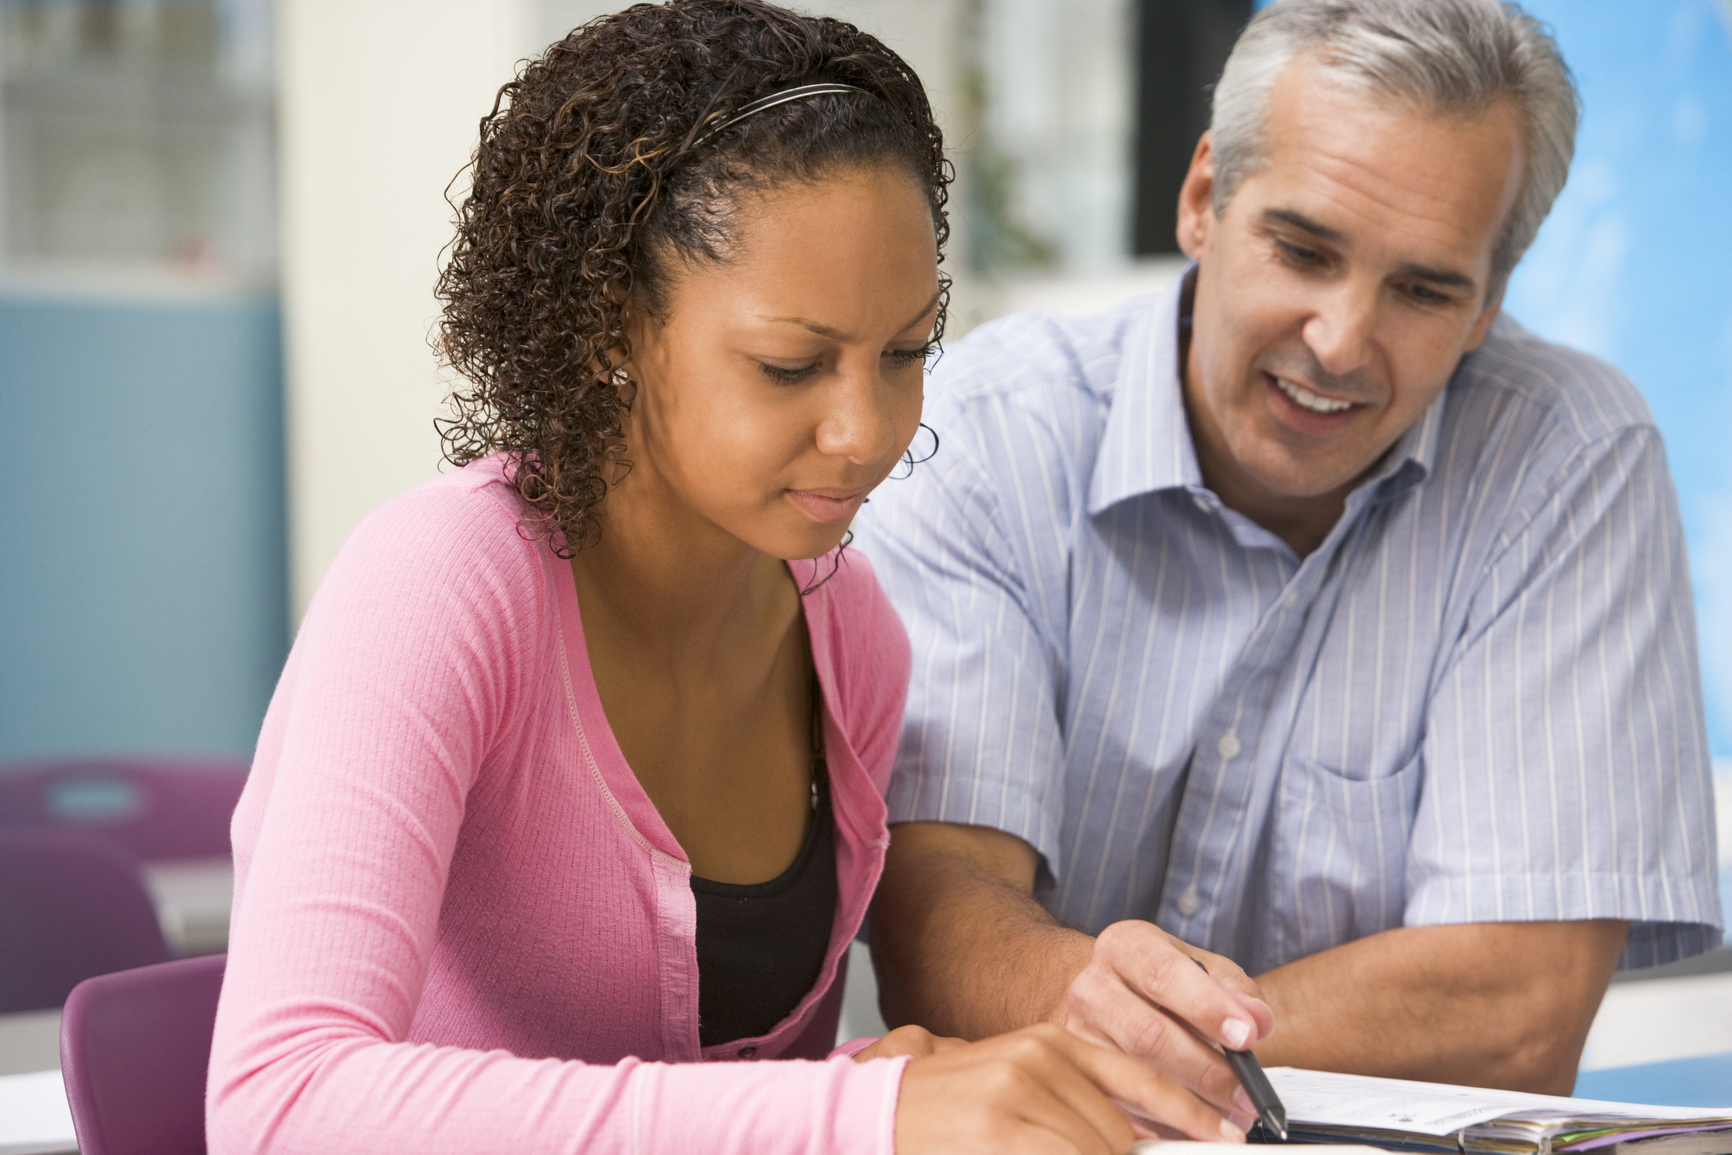 Brighten Student Life With A Private Tutor